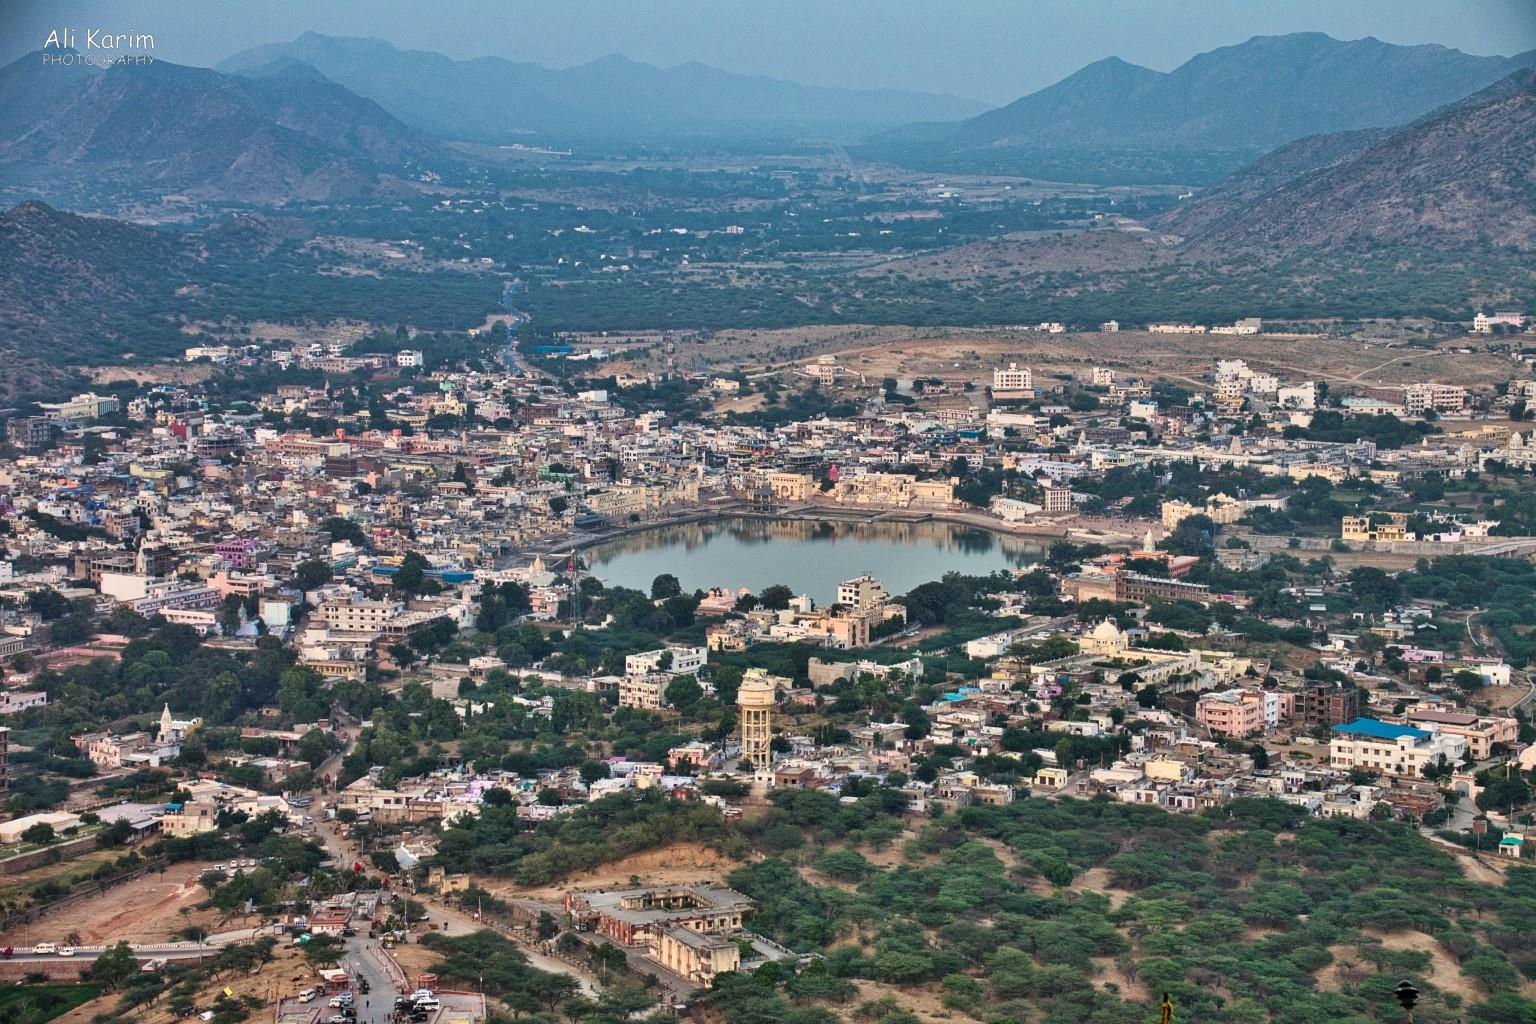 Pushkar, Rajasthan Great view of Pushkar Lake and town, as well as the Aravalli hills